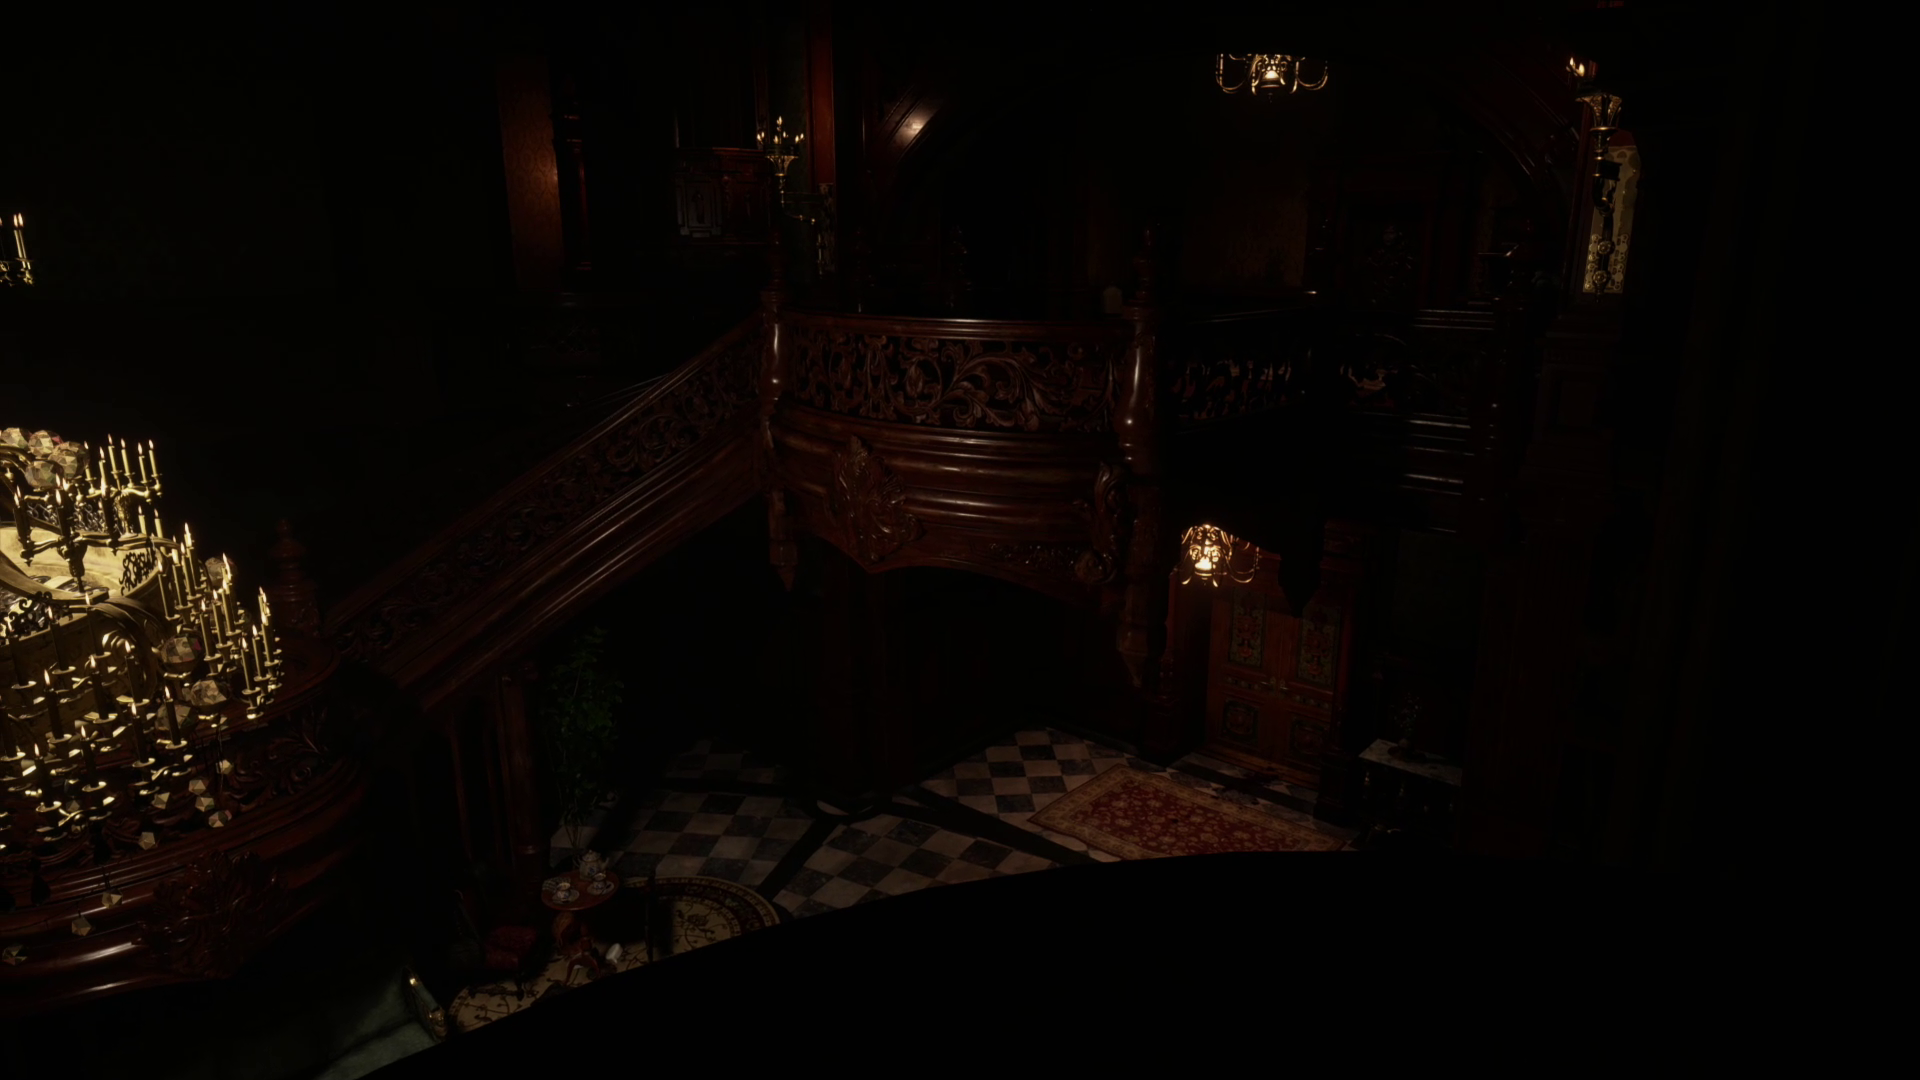 resident-evil-village-maiden-demo-hands-on-impressions-ps5-short-but-visually-gorgeous-and-bone-chilling-1